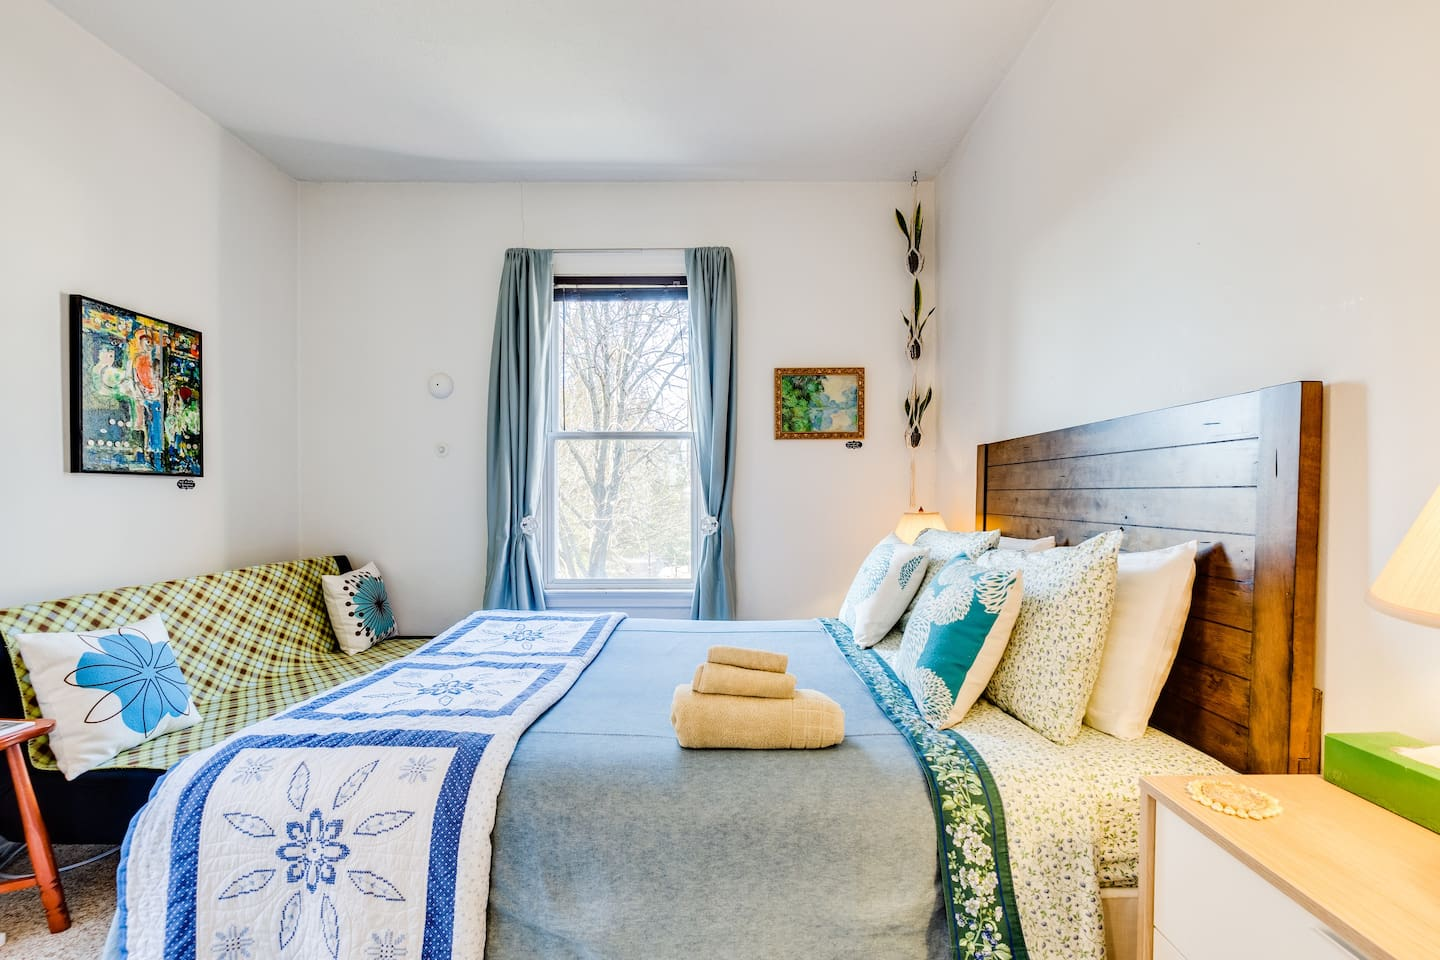 Restful, comfortable, clean bedroom. Queen-sized mattress, air conditioner during warm months, the best blackout curtains on the market, high-quality pillows, futon, work desk and large closet with hangers.